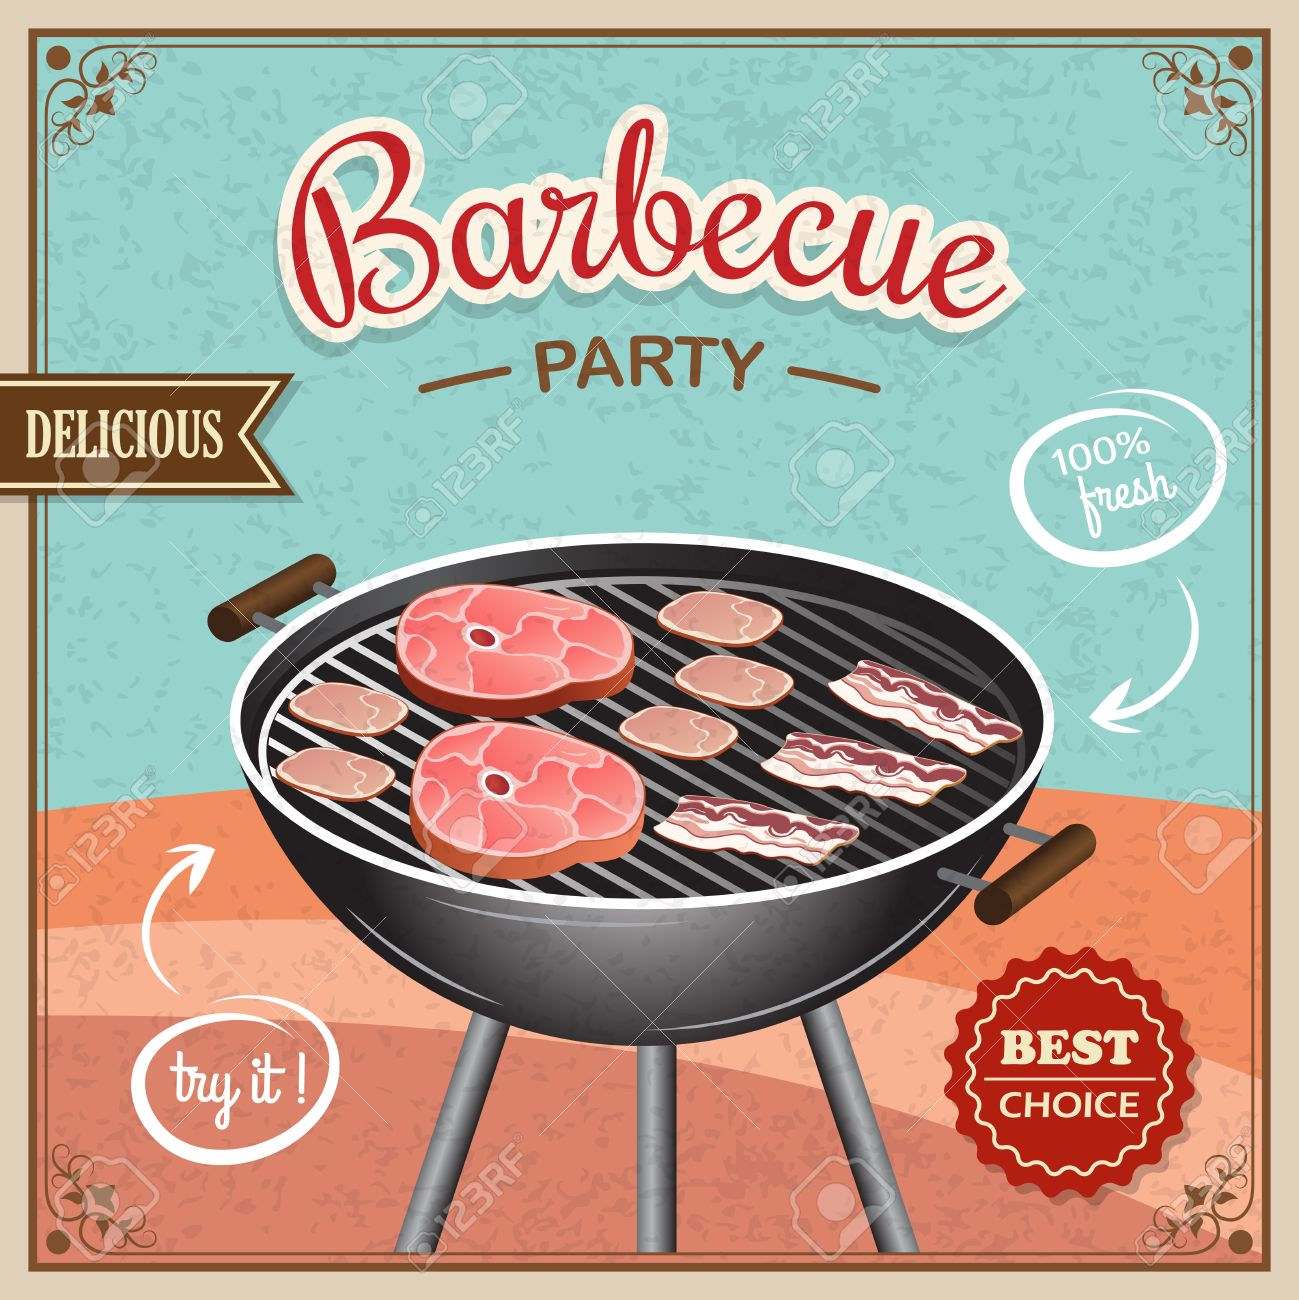 Bbq grill party best choice flyer promo restaurant poster vector